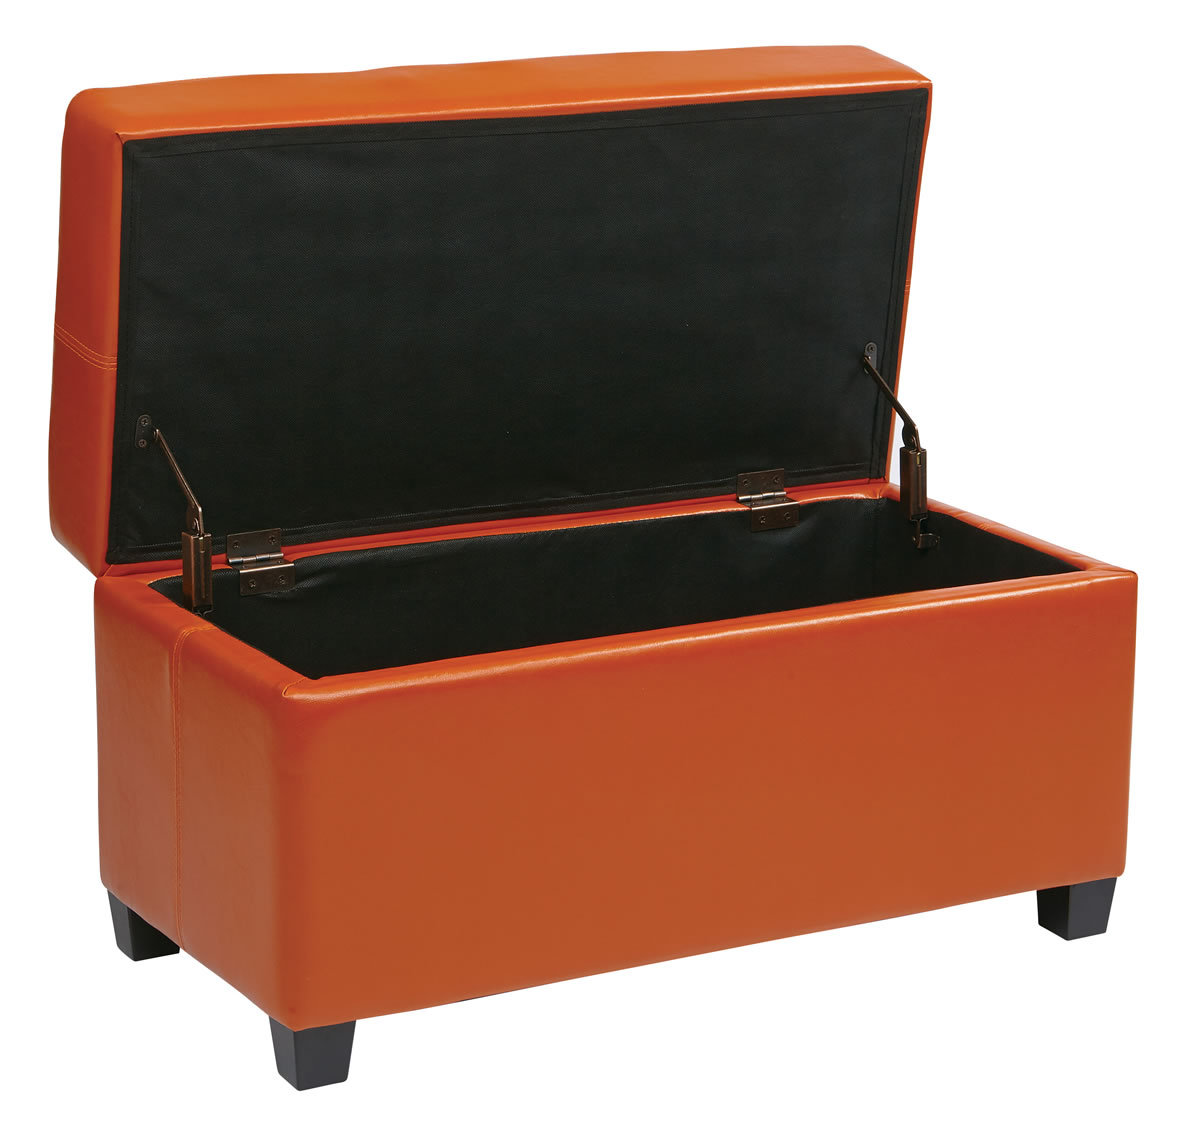 Pink Fairy Wishes Bench Seat With Storage Toy Box Seating: 32 Wide Vinyl Storage OTTOMAN Bench Toy Chest & Wood Legs